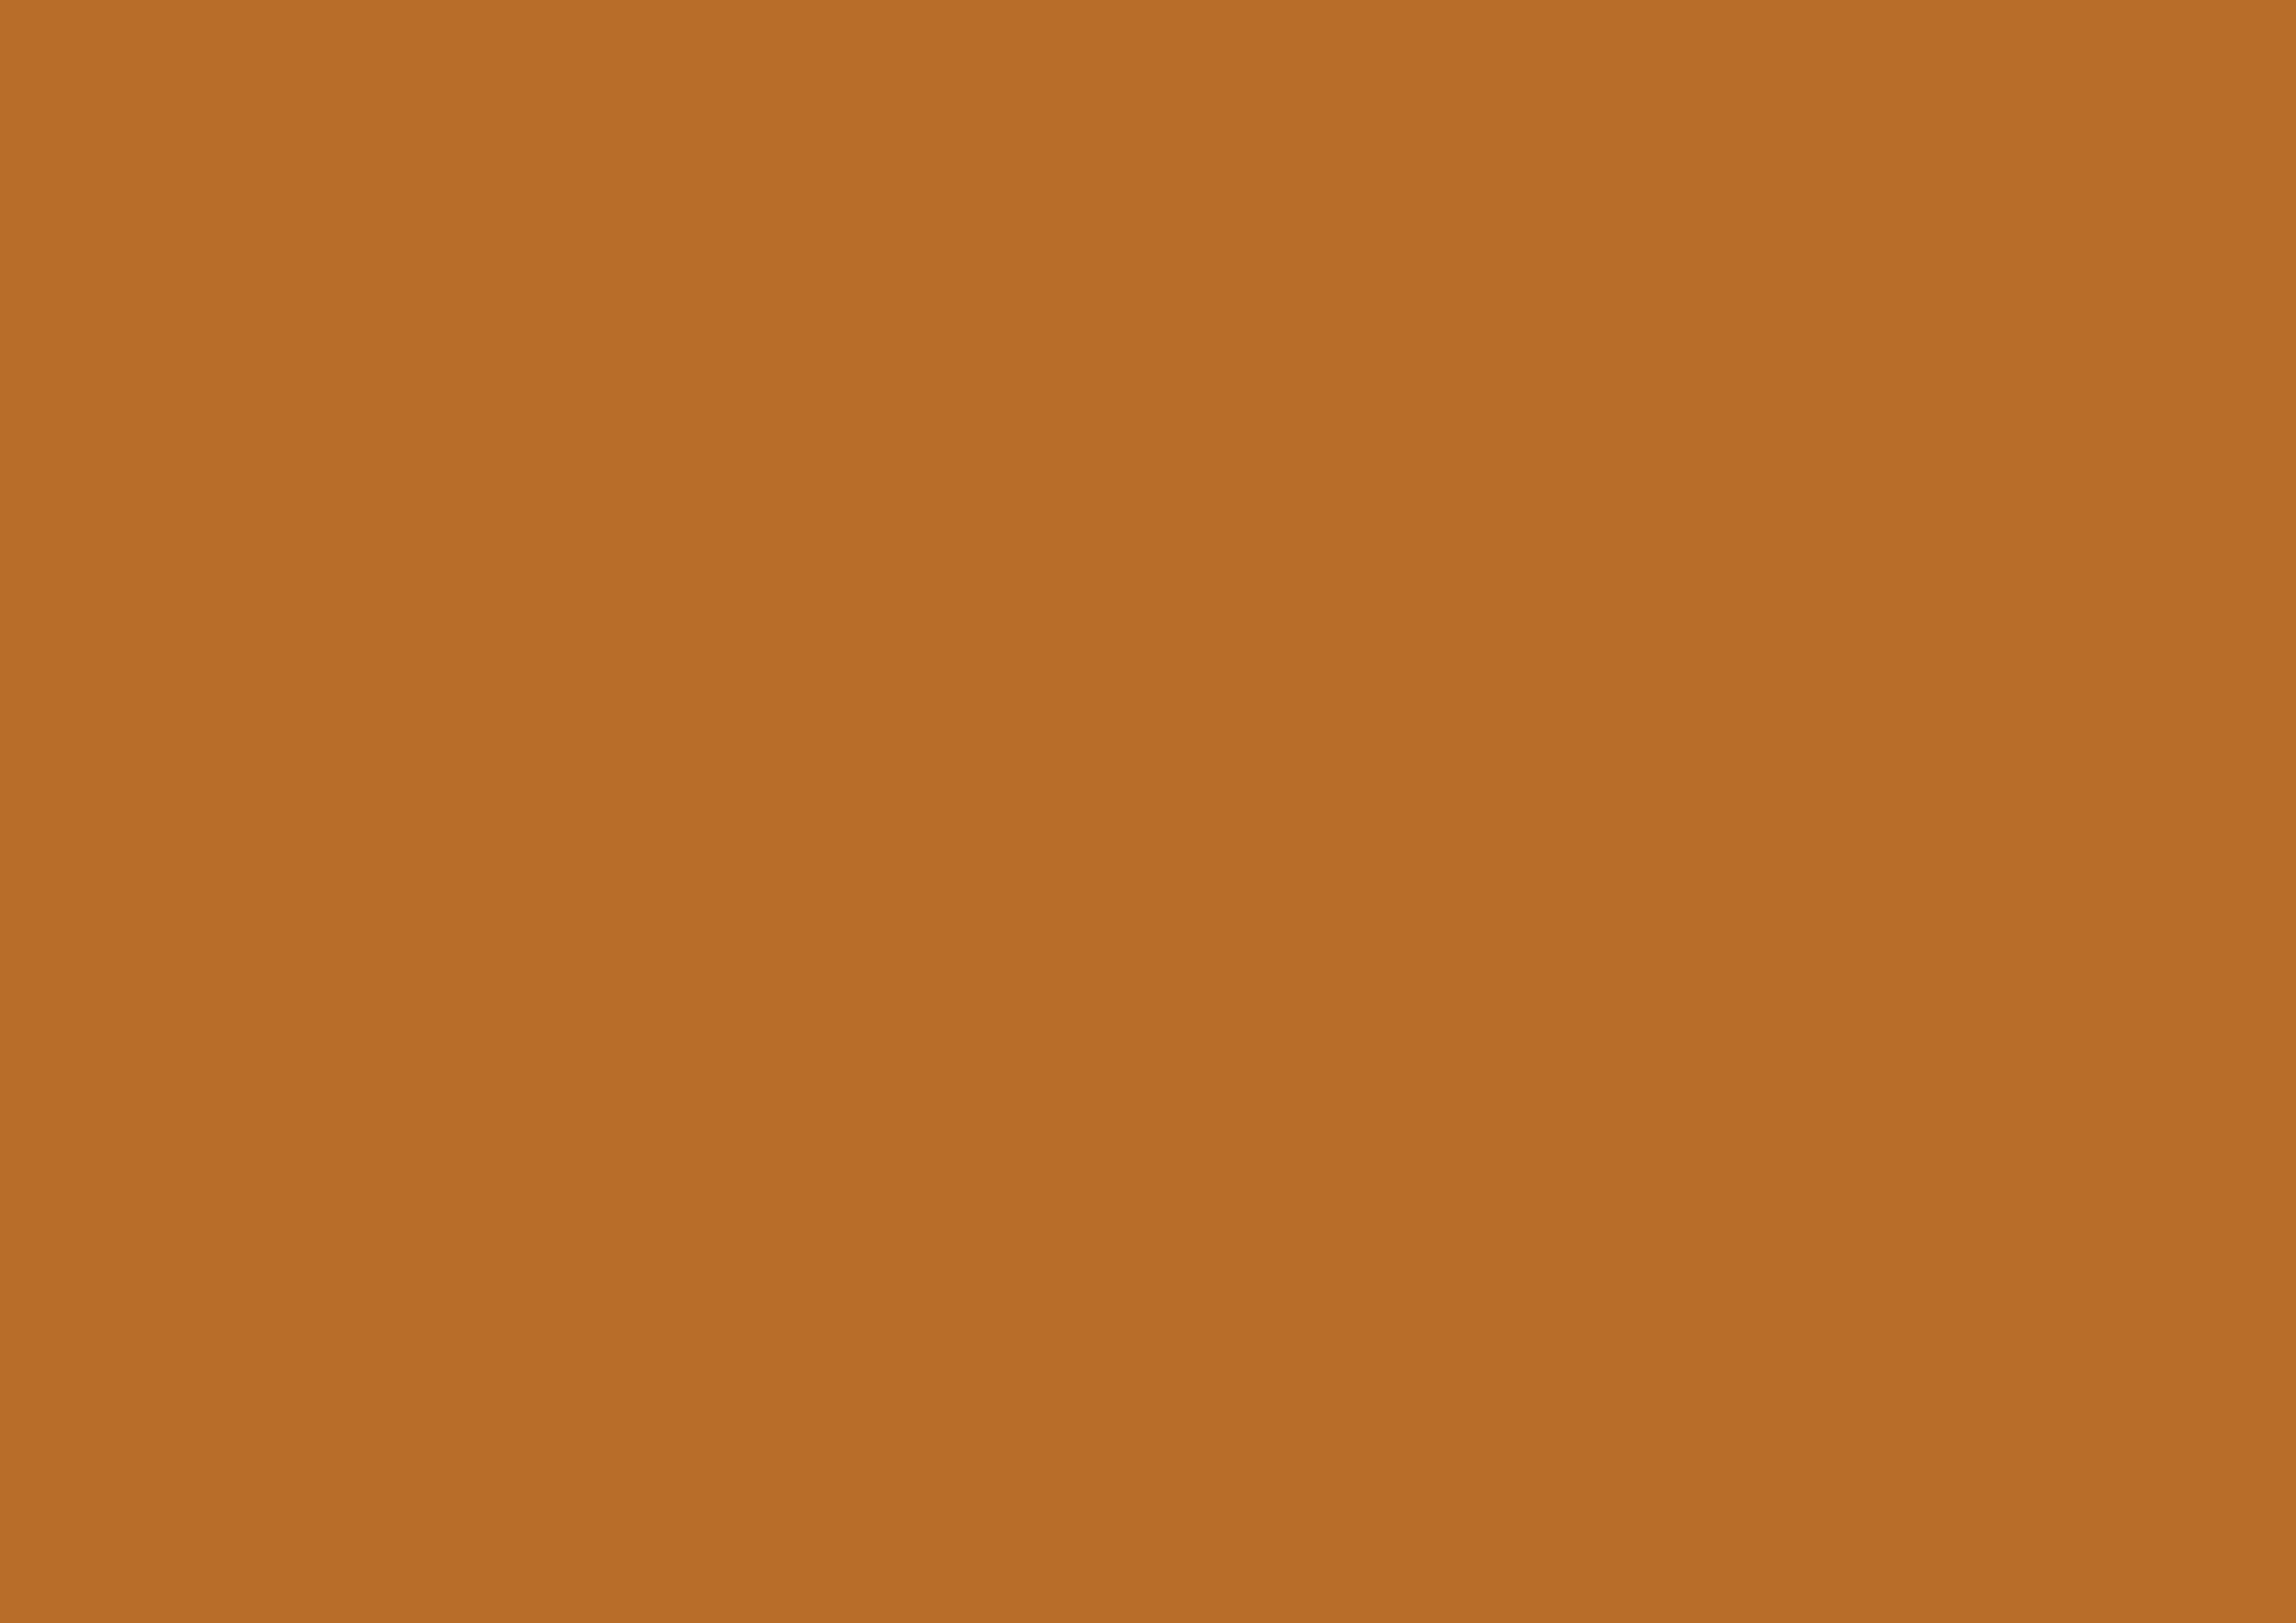 3508x2480 Liver Dogs Solid Color Background